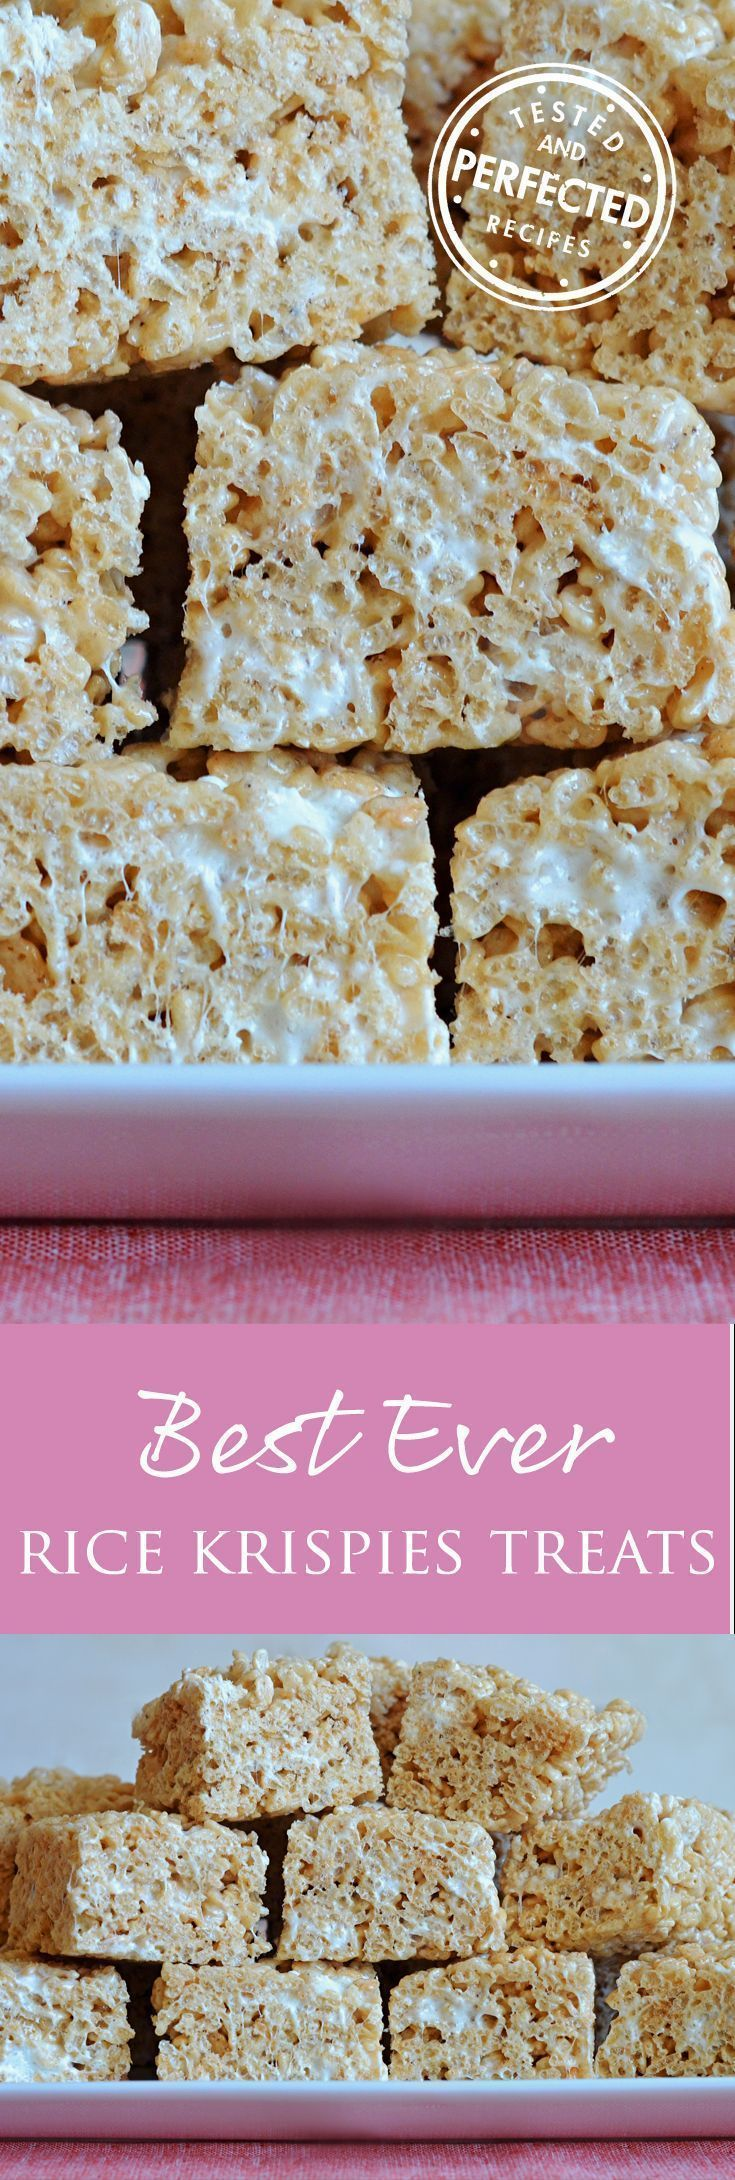 Made with brown butter, vanilla, salt, and the perfect amount of marshmallows, these are the BEST Ever Rice Krispie Treats. Thoroughly kid approved Krispies Treats #krispiestreats #sweetrecipes #testedandperfected